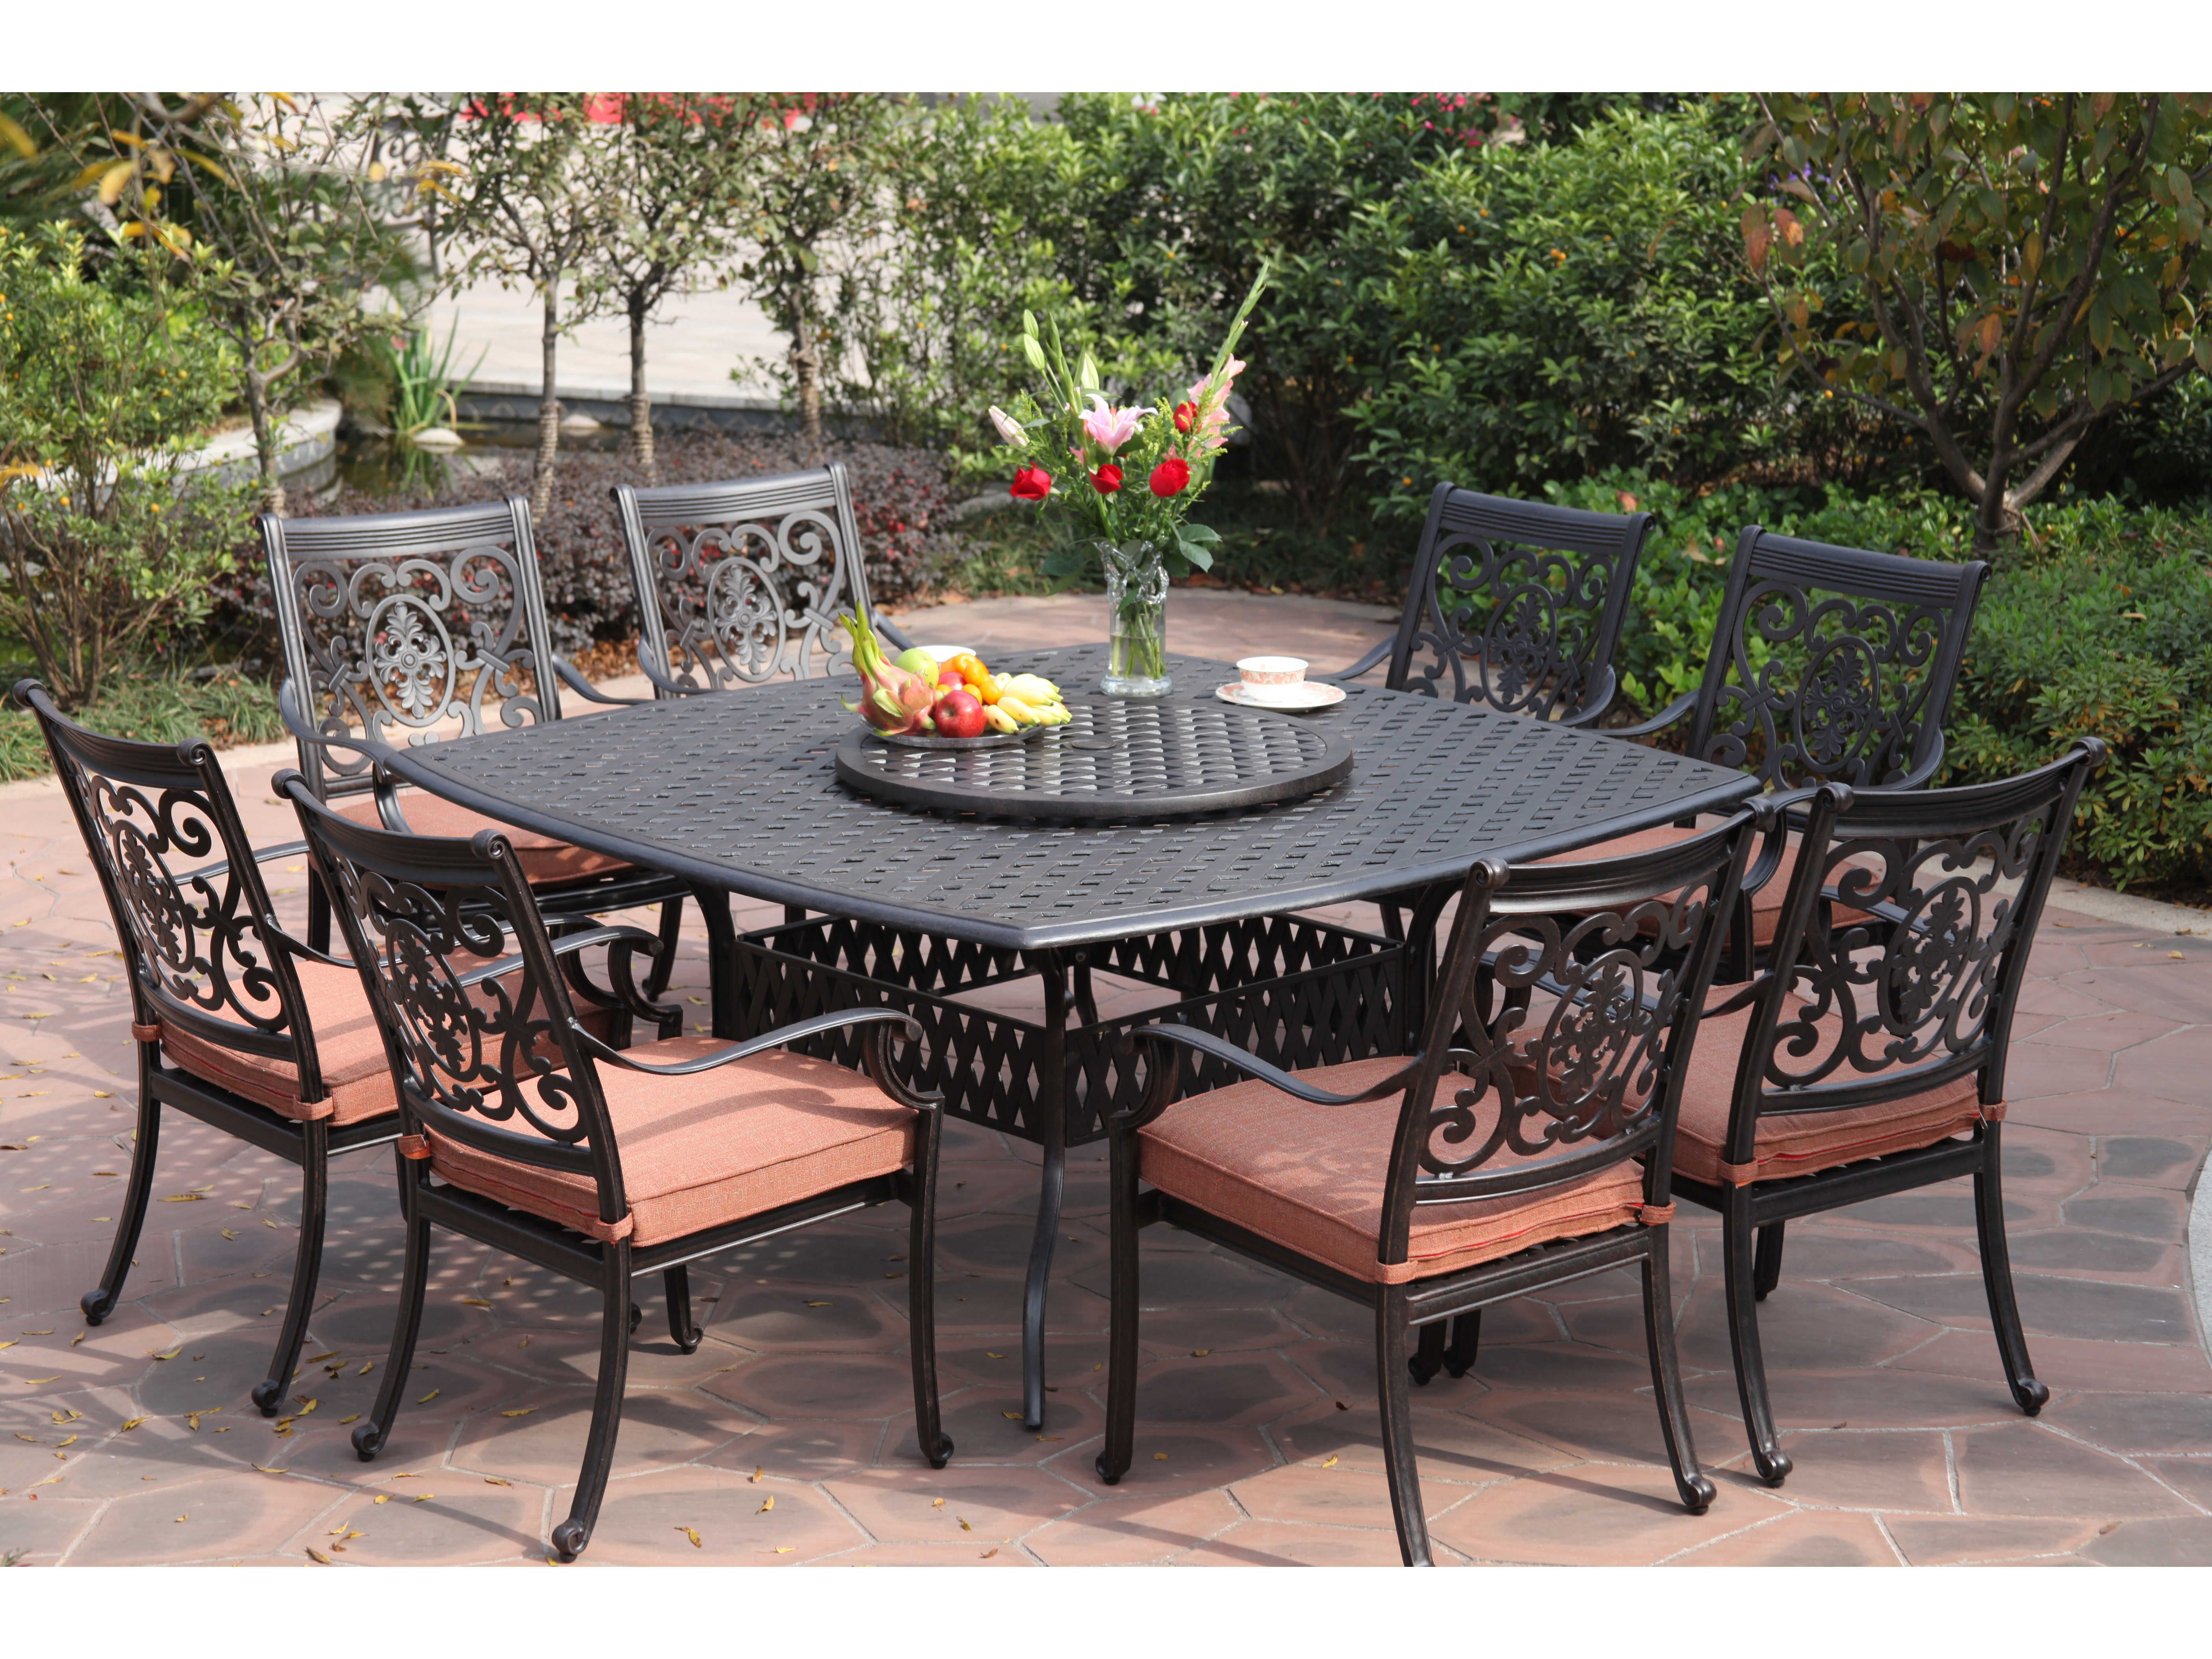 Awesome Costco Outdoor Furniture For Your Home Ideas Alumunium